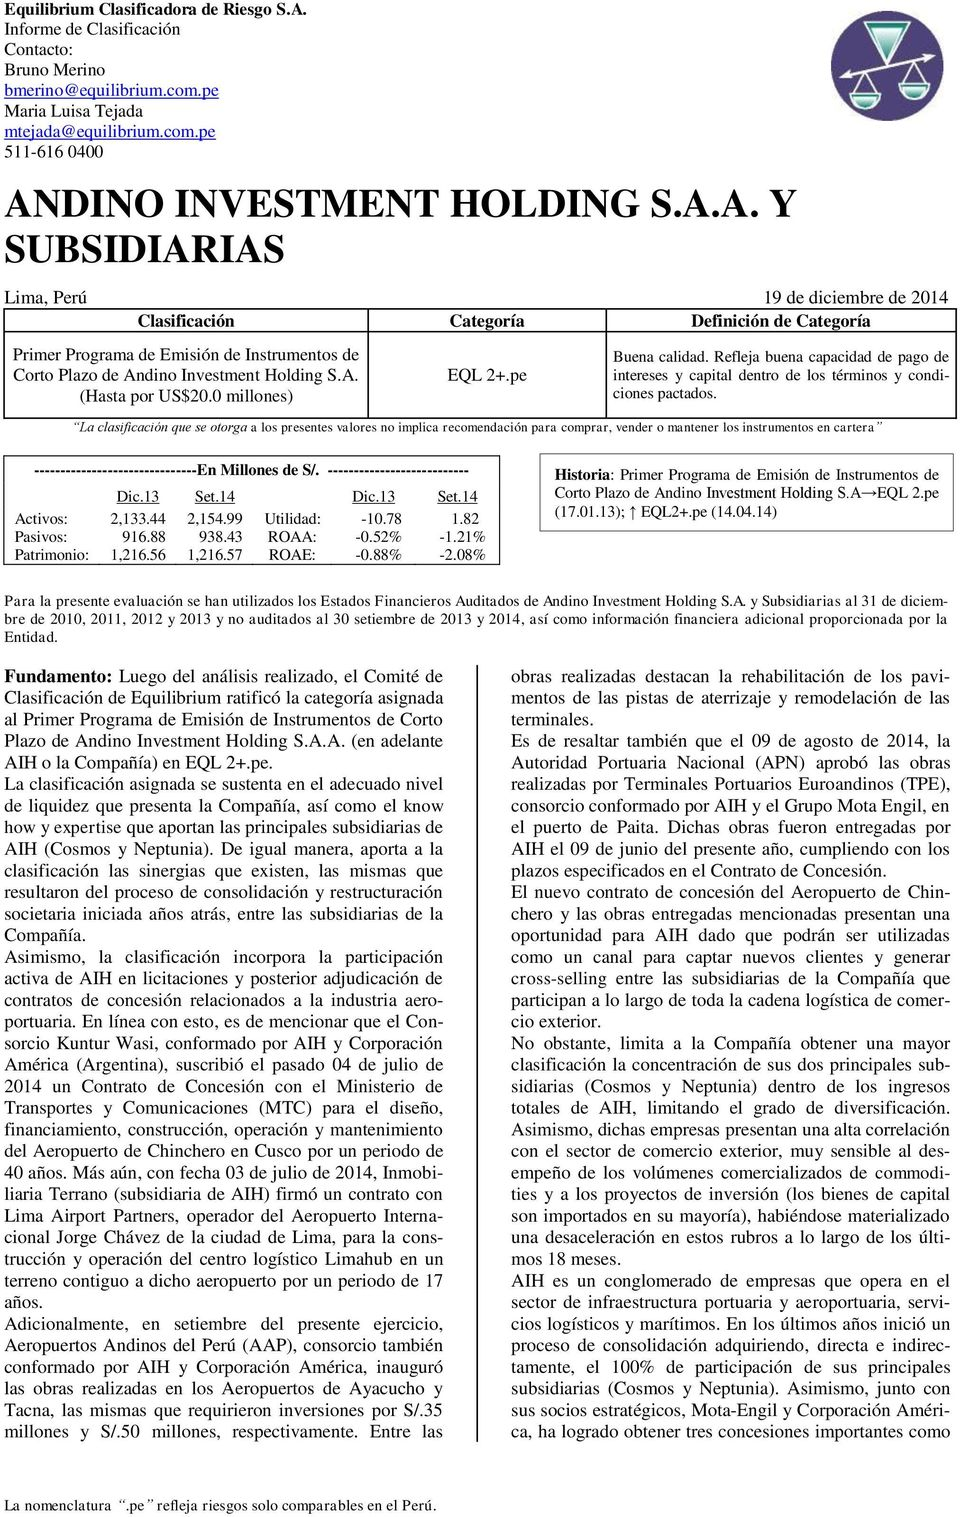 Andino investment holding gestion de riesgos mobella investments llc